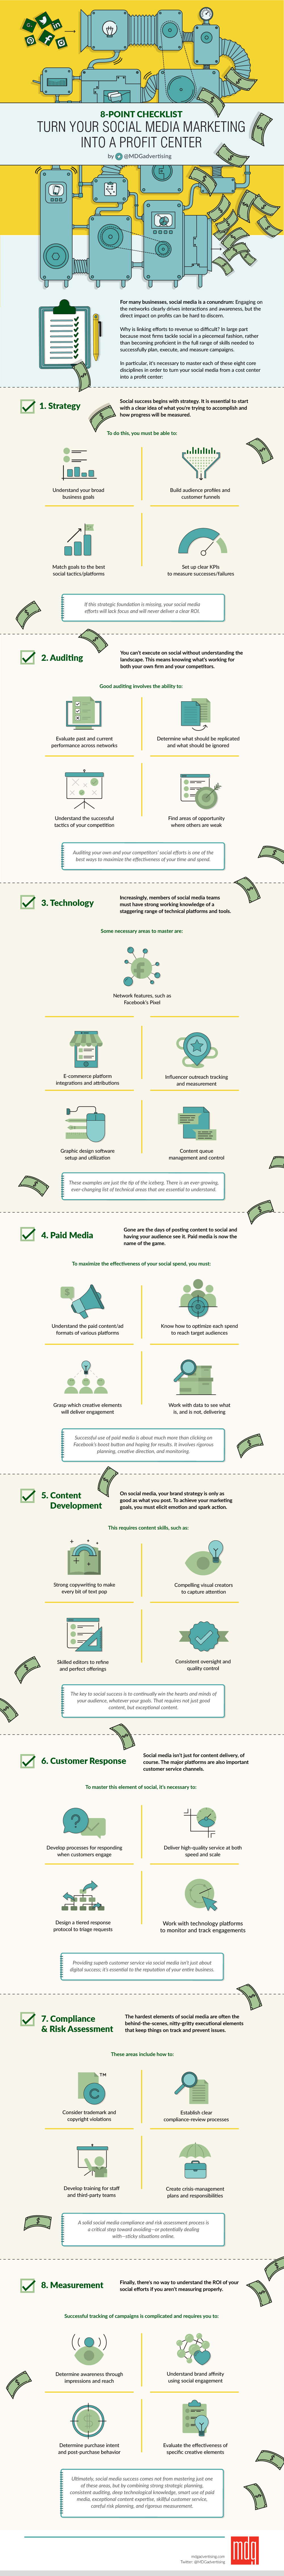 Make Money With Social Media Marketing Infographic